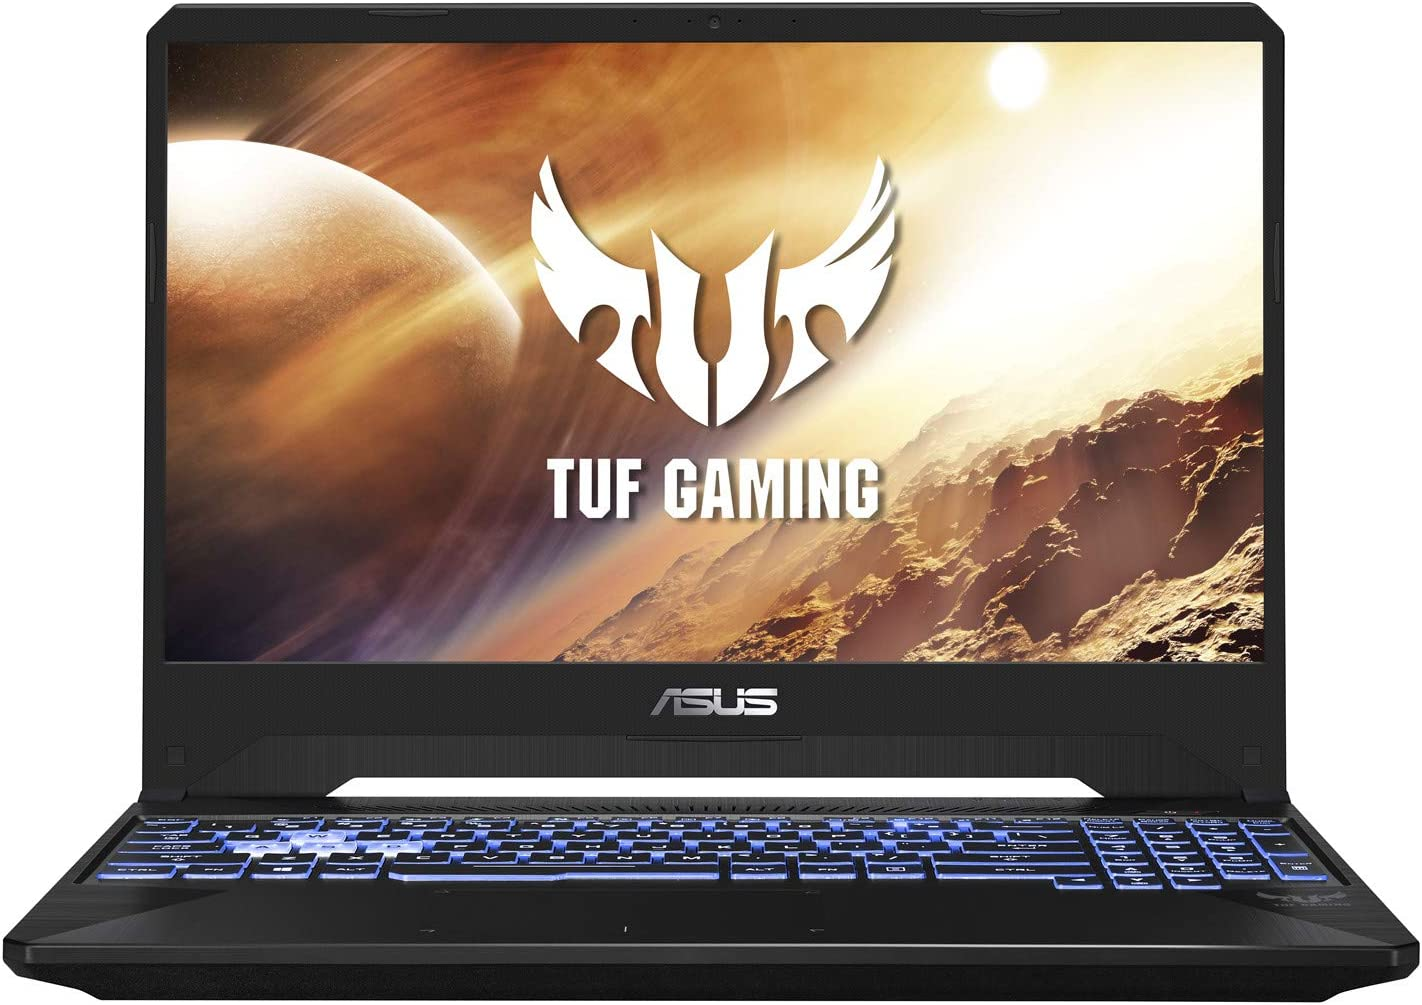 "2019 ASUS TUF 15.6"" FHD Gaming Laptop Computer, AMD Ryzen 7 3750H Quad-Core up to 4.0GHz, 8GB DDR4 RAM, 256GB PCIe SSD, GeForce GTX 1660 Ti 6GB, 802.11ac WiFi, Bluetooth 4.2, USB 3.1, Windows 10"